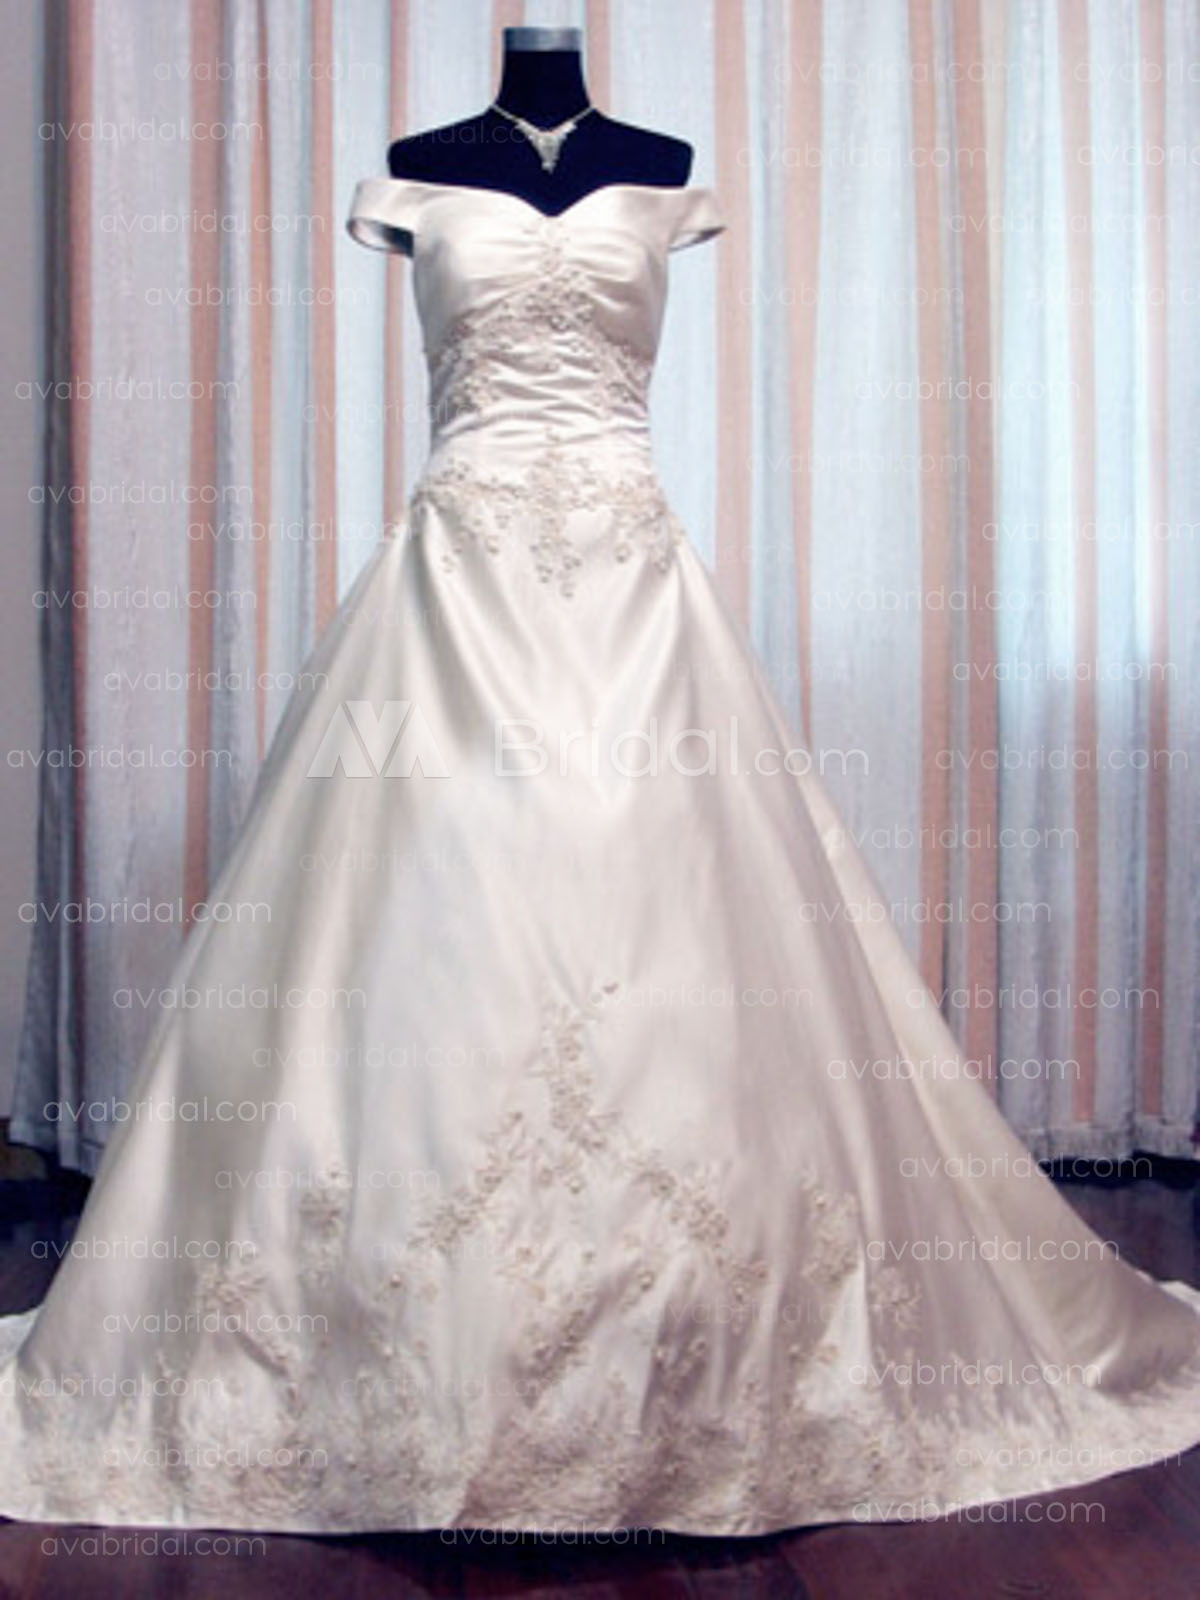 Modest Bridal Gown - Cherith - Front